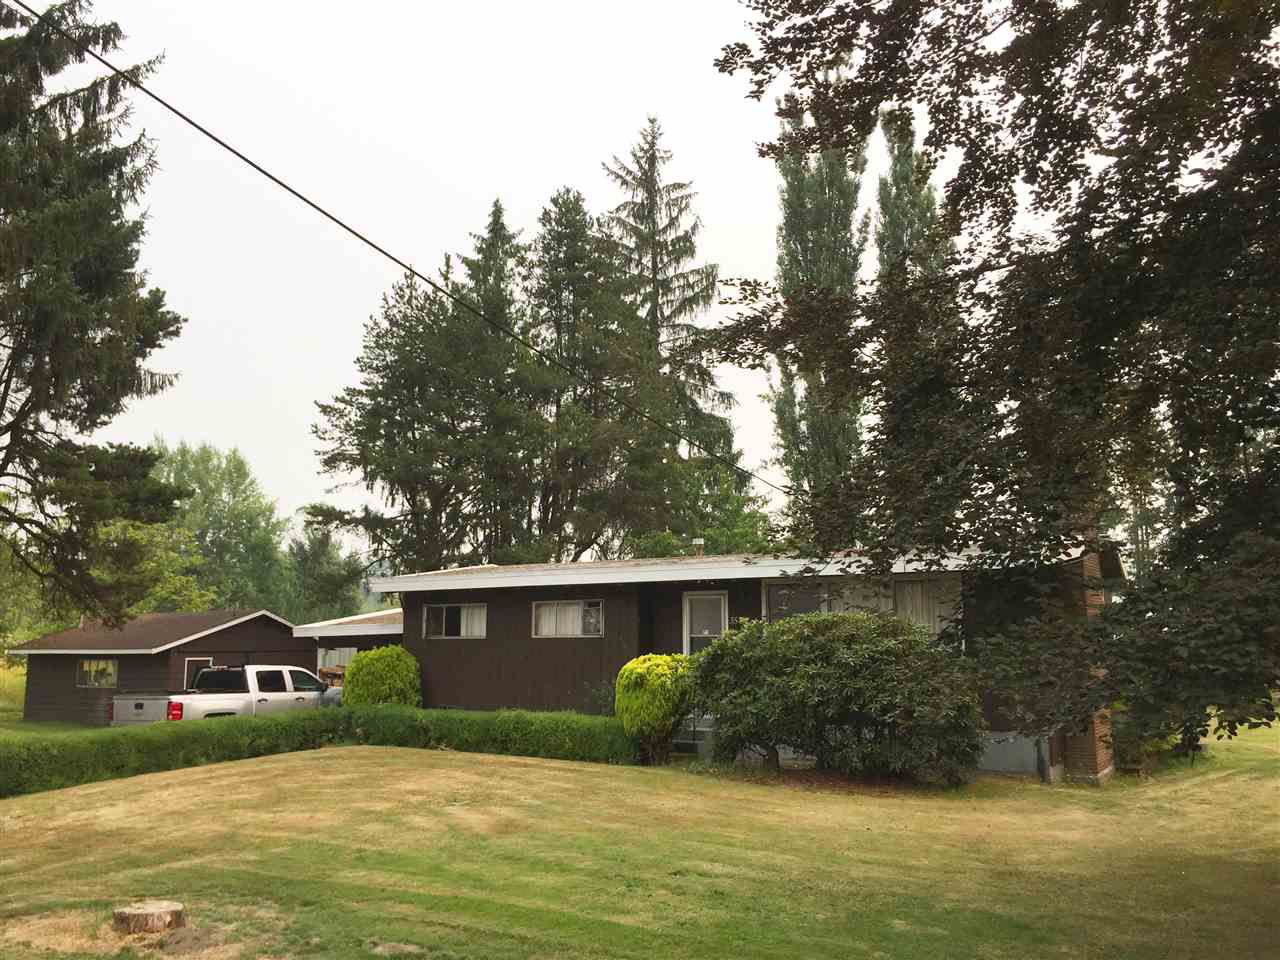 Main Photo: 3534 264 STREET in Langley: Aldergrove Langley House for sale : MLS®# R2196093